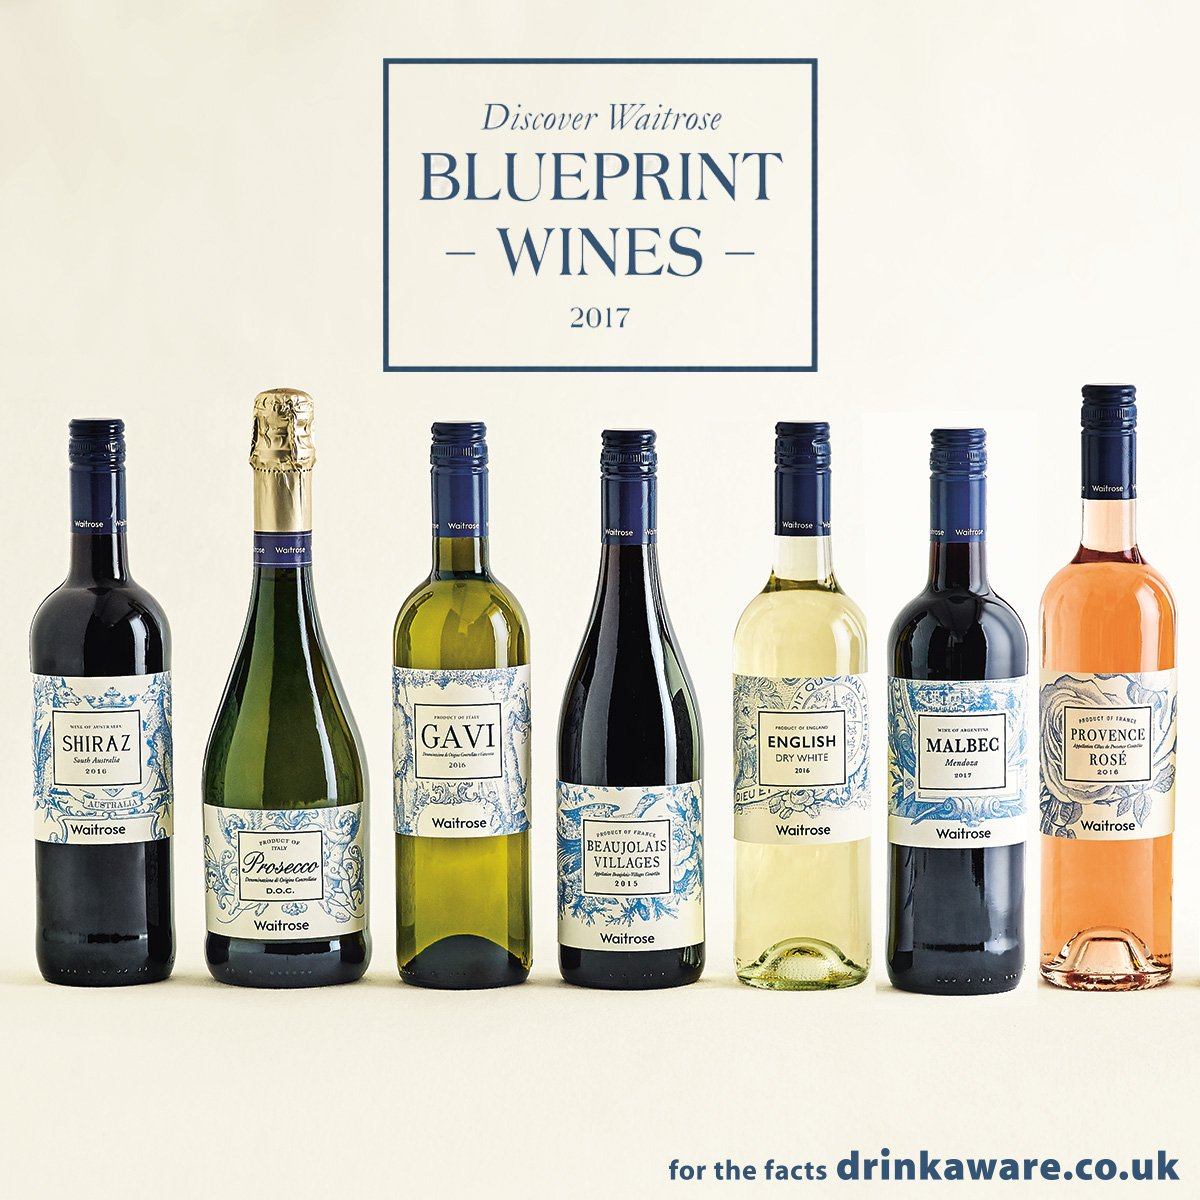 Waitrose wine on twitter discover waitrose blueprint wines waitrose wine on twitter discover waitrose blueprint wines crafted to reflect the worlds classic regions and styles malvernweather Images